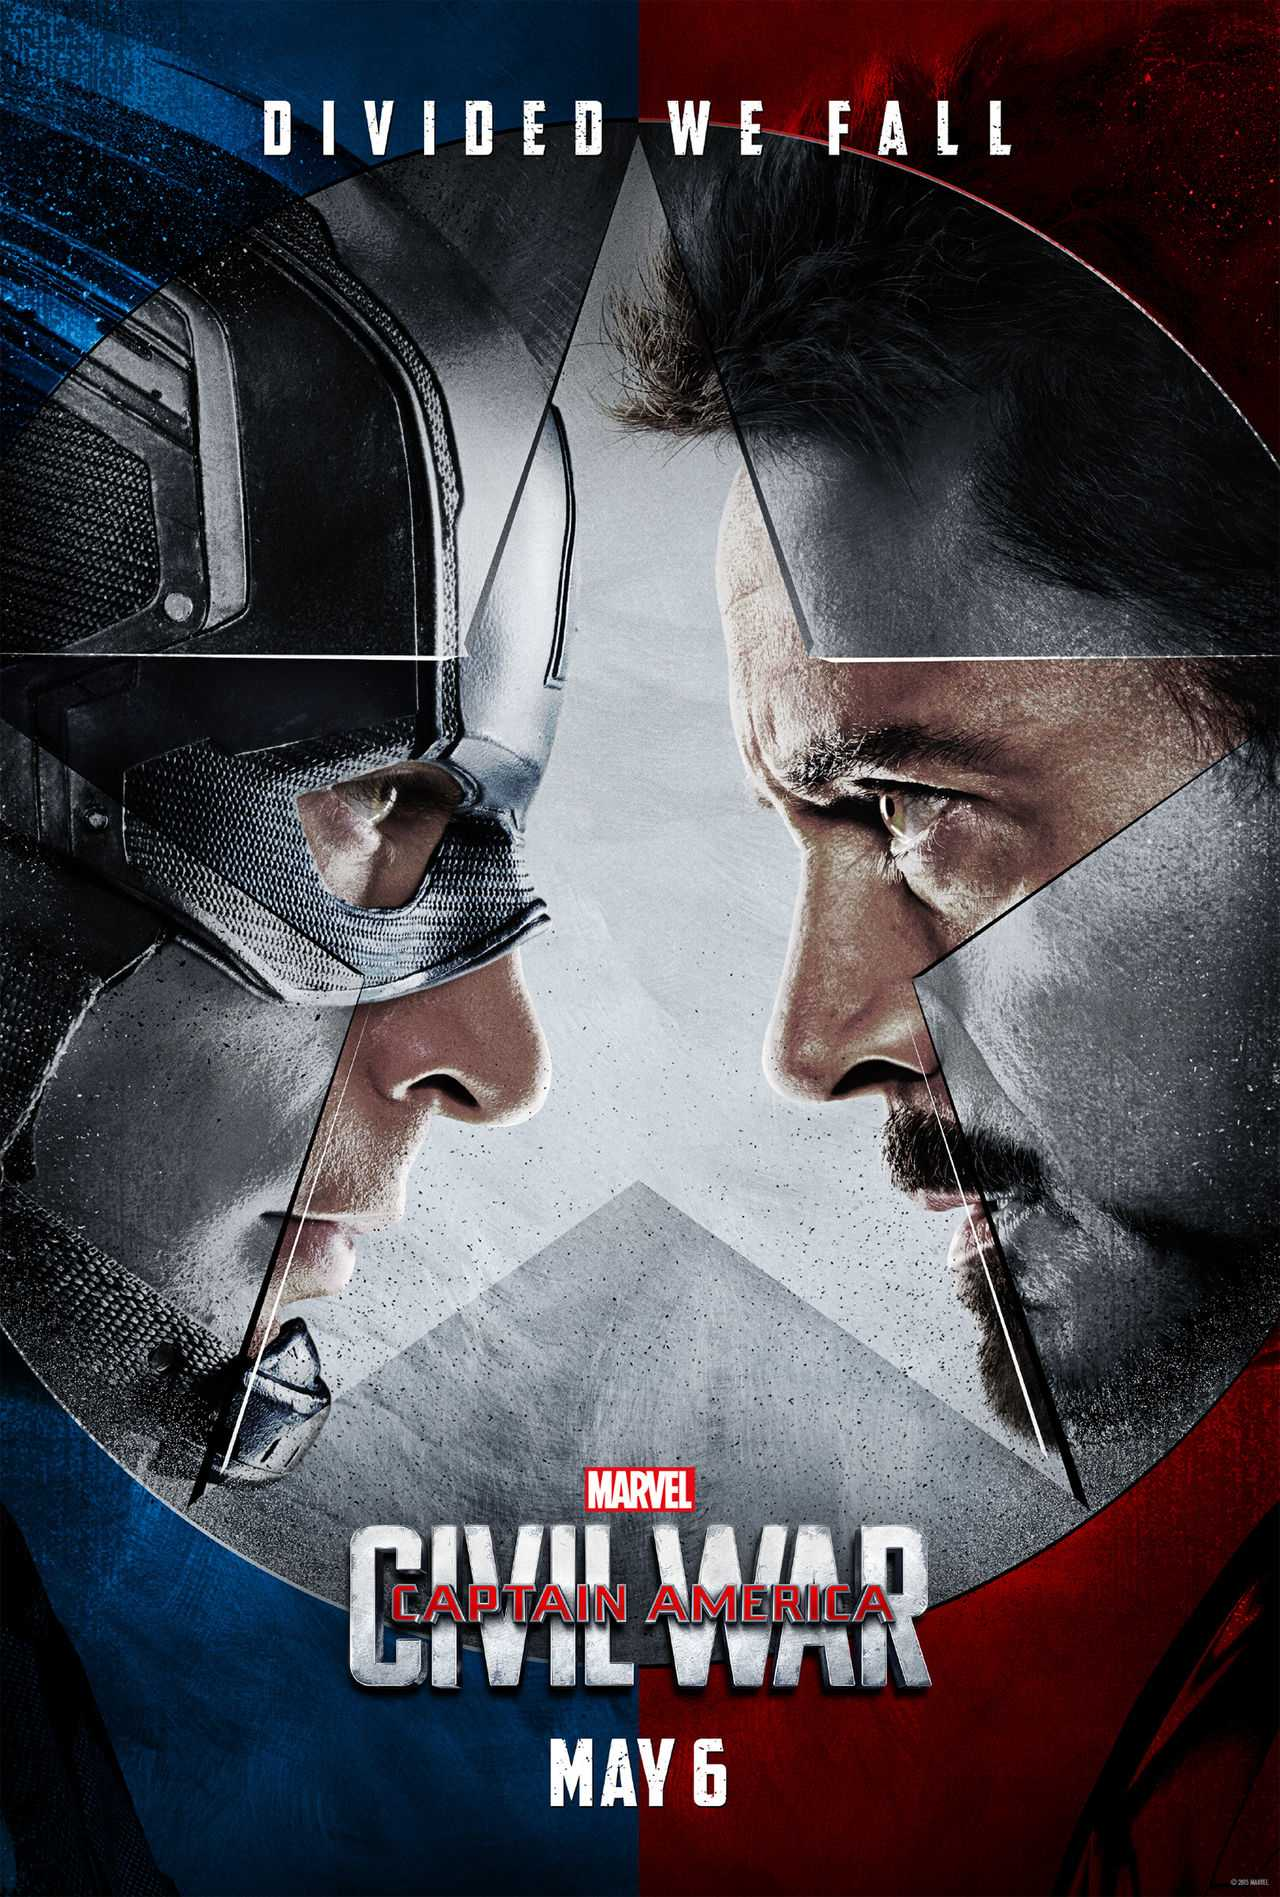 Captain America Civil War movie poster courtesy of www.blastr.com